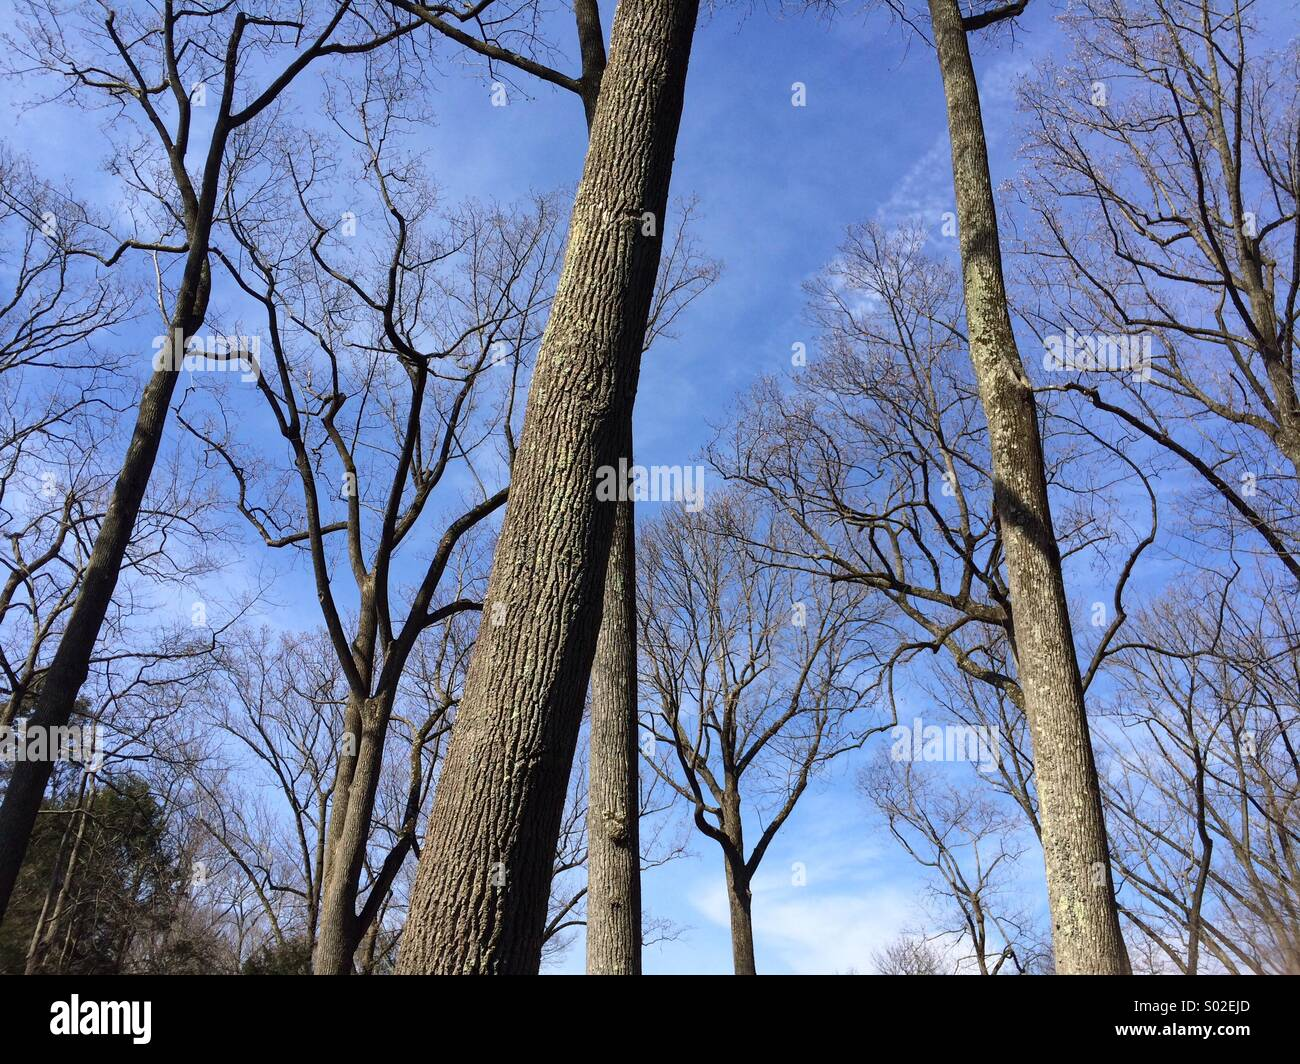 Trees in winter - Stock Image